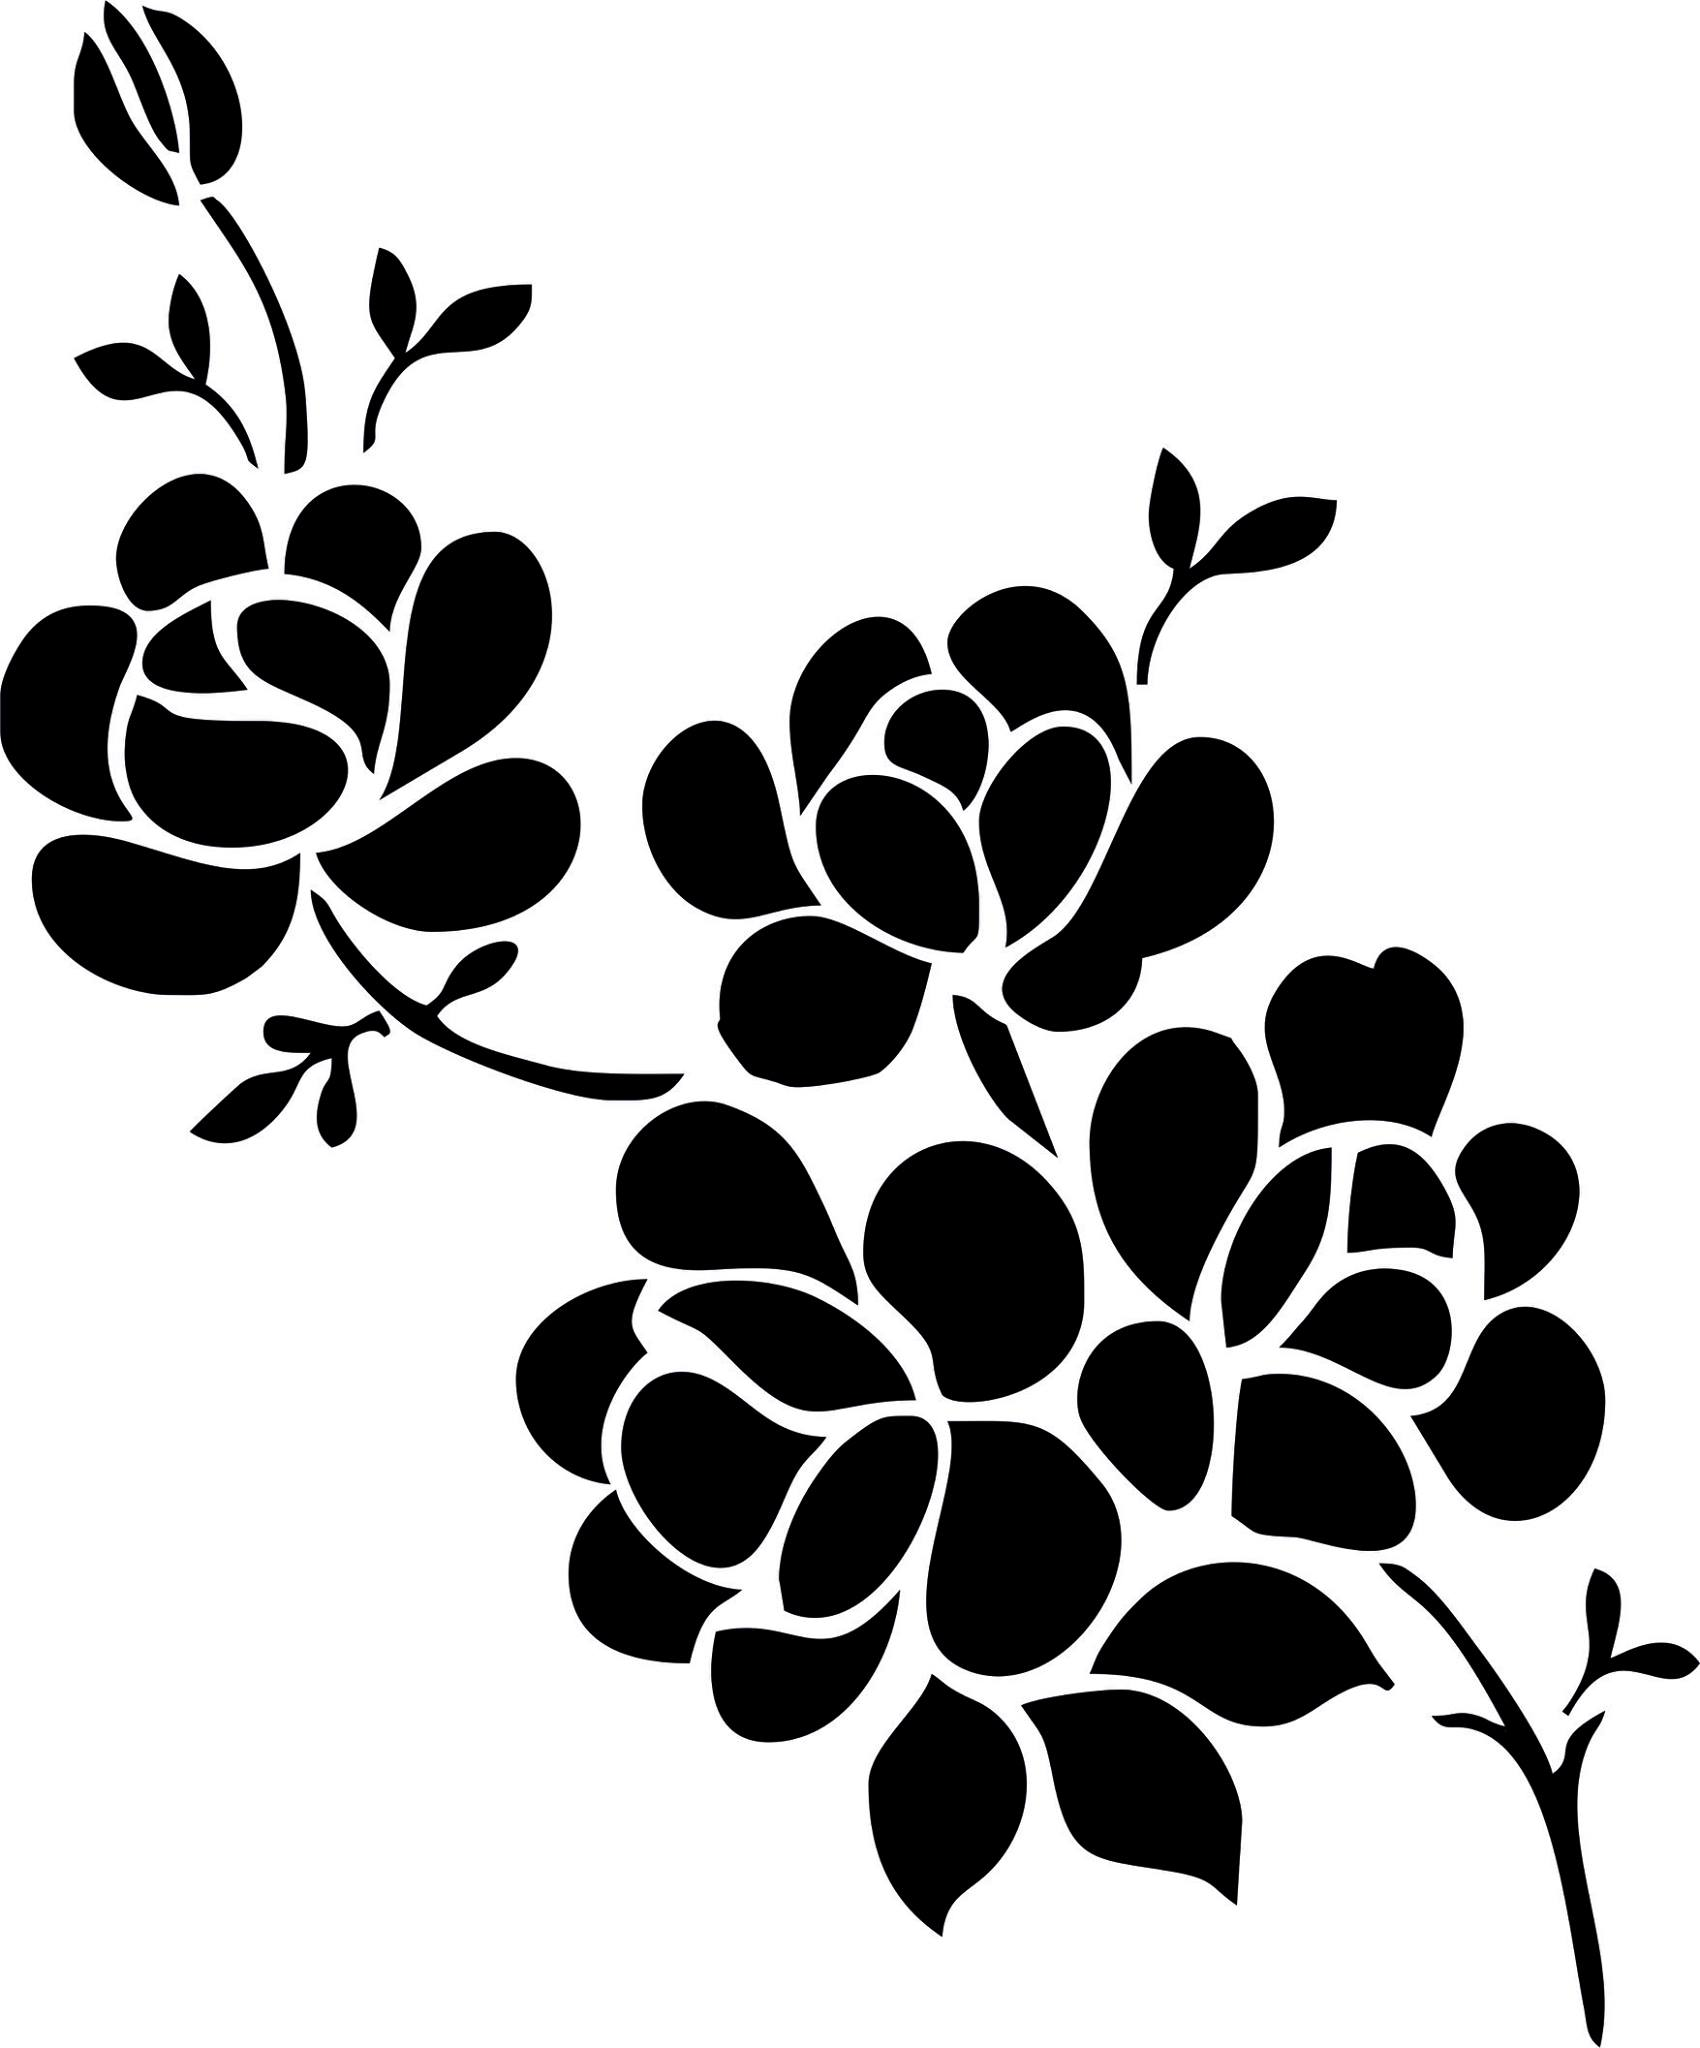 1700x2048 Elegant Black And White Flower Vector Art Jpg Image Free Download